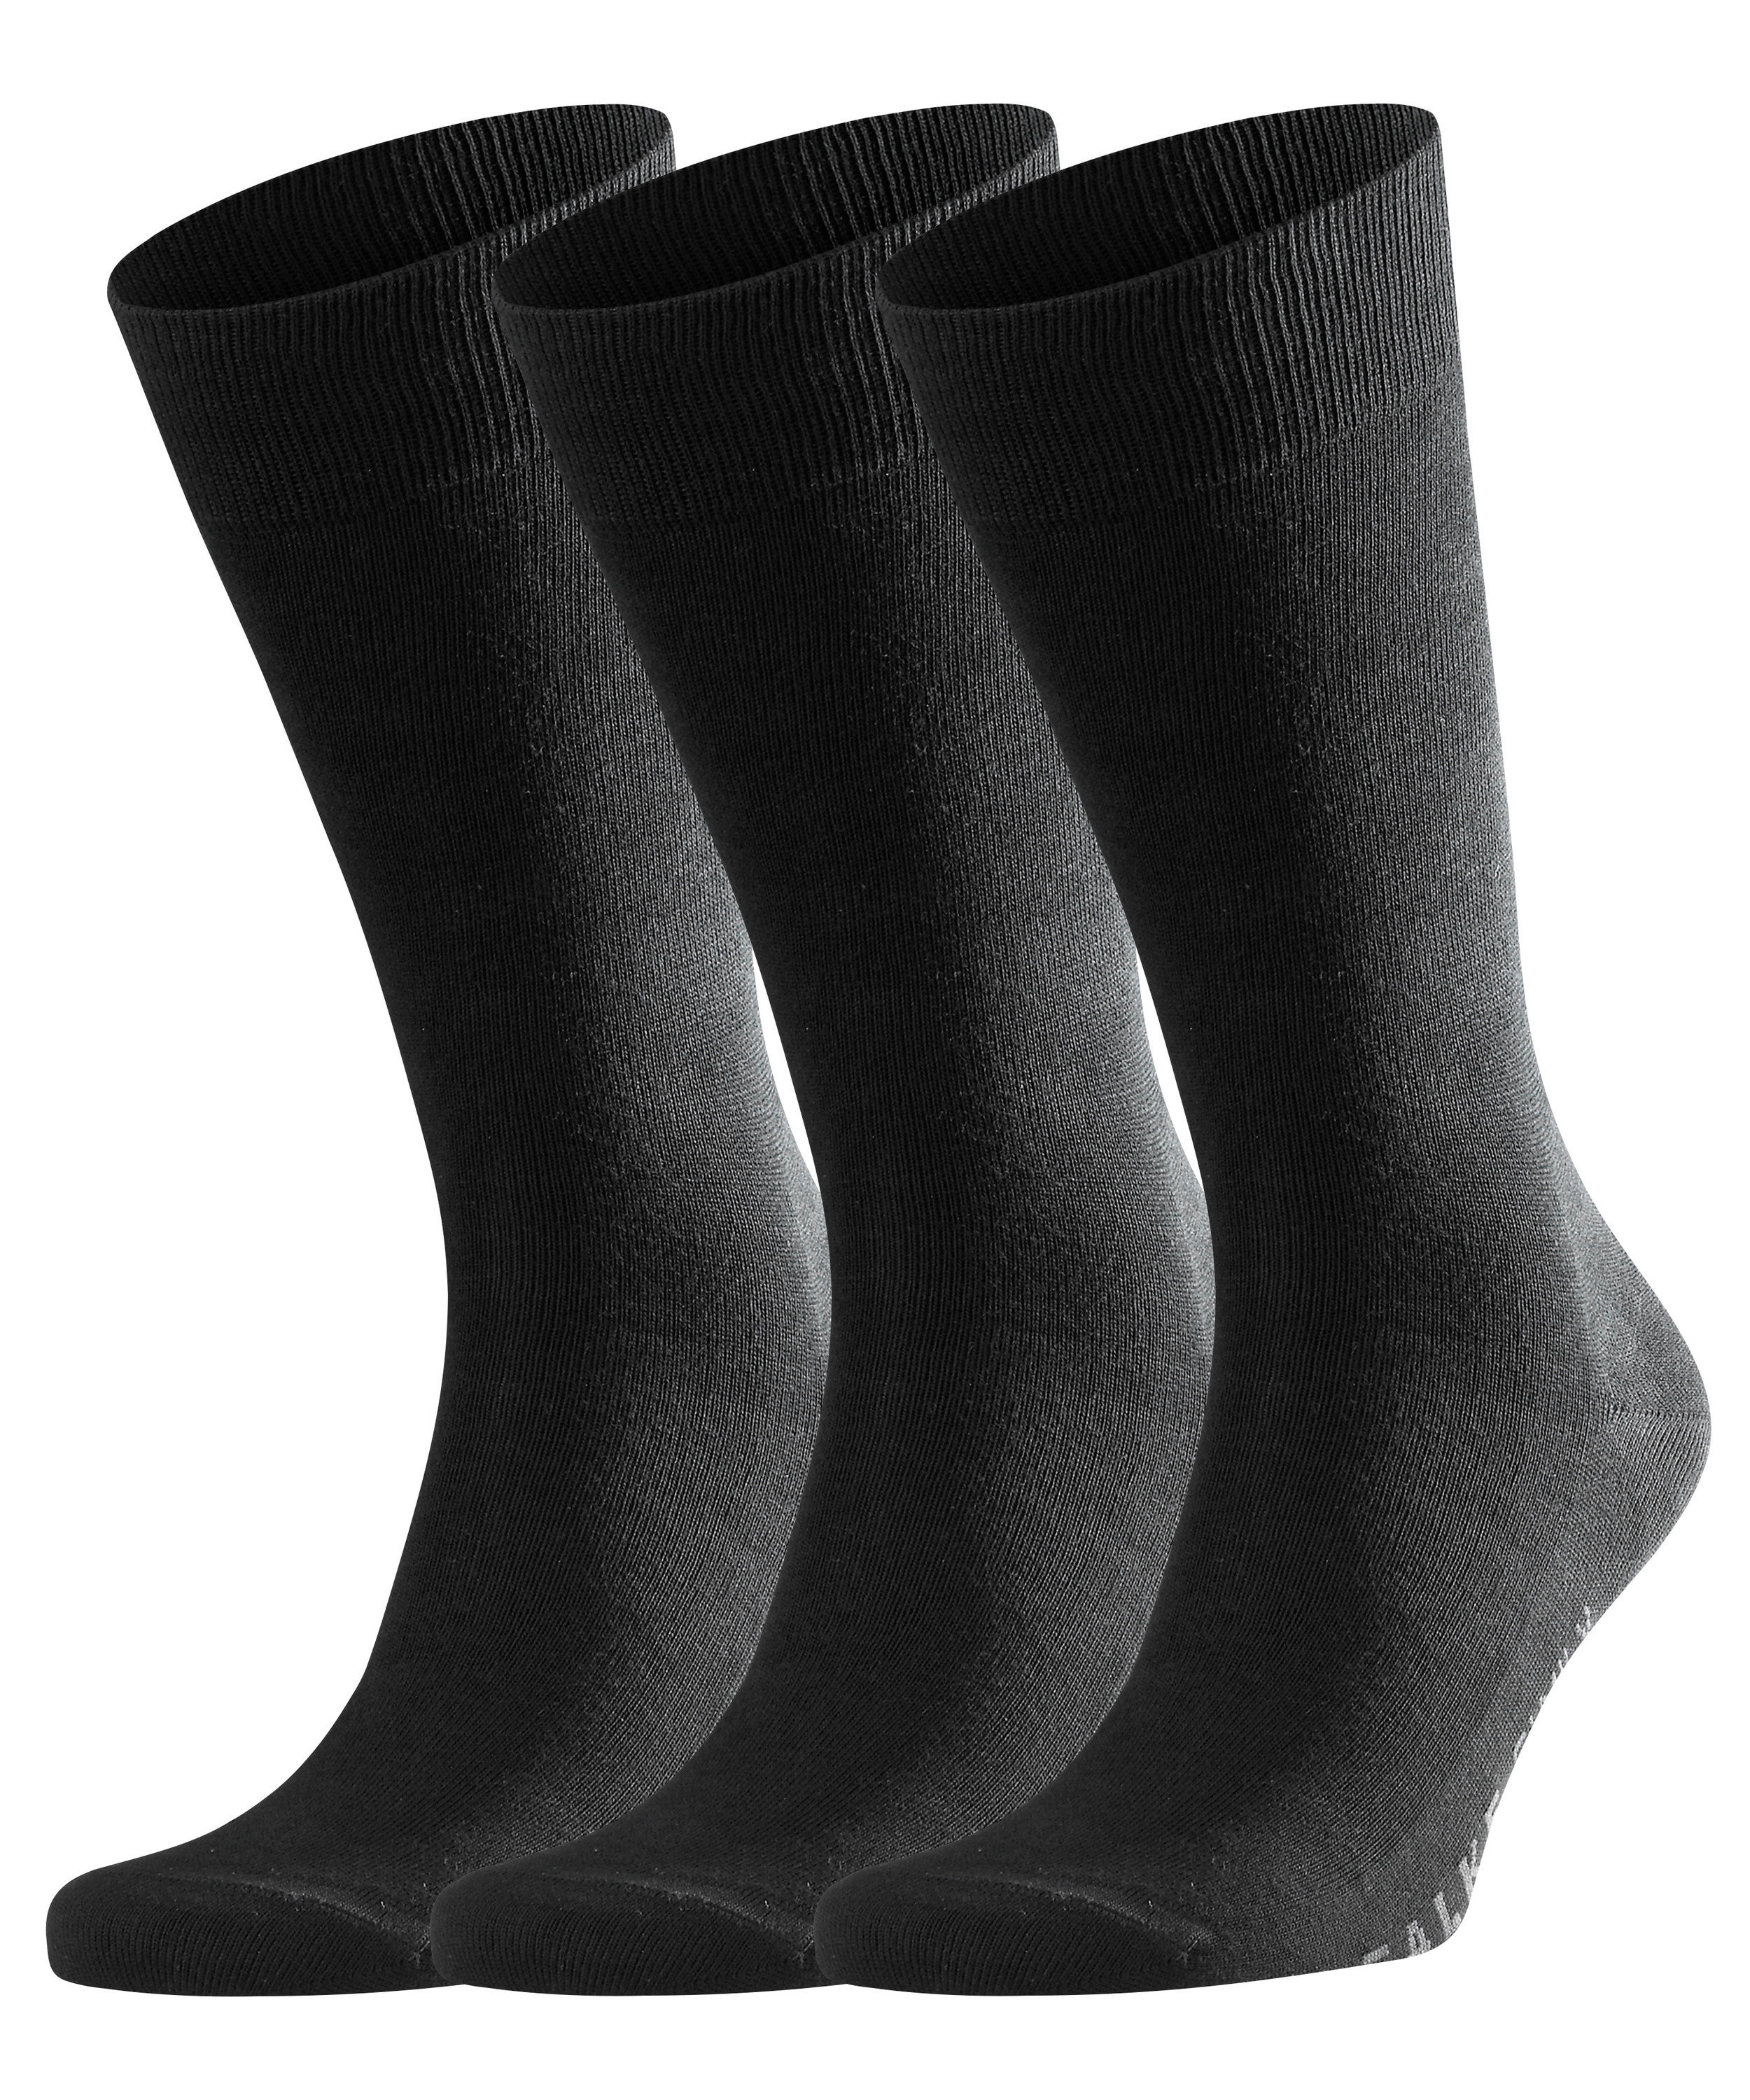 FALKE Family 3-Pack Herren Socken BLACK